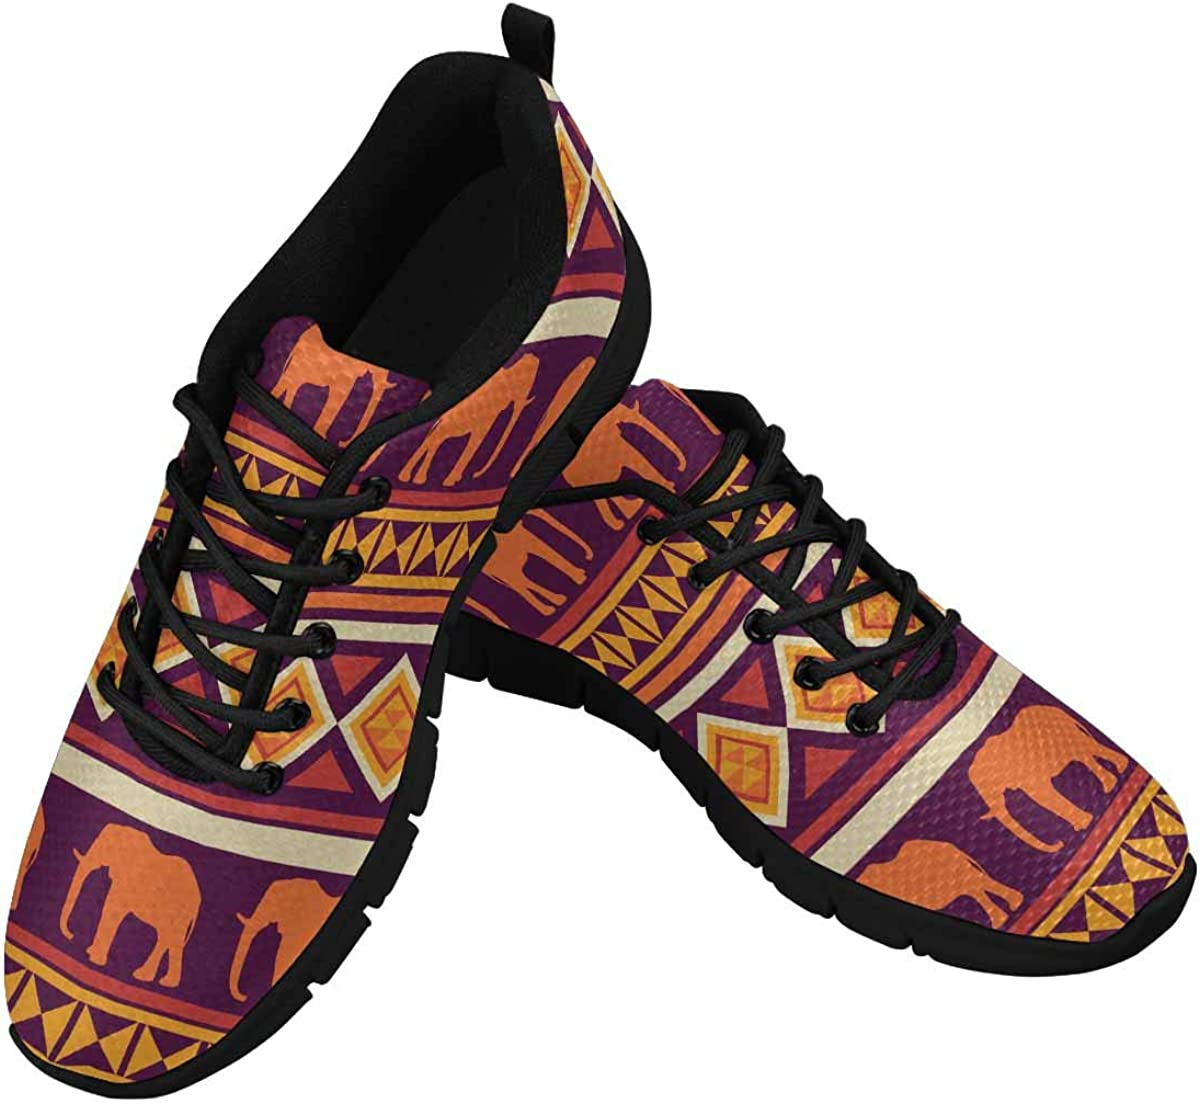 INTERESTPRINT Colorful Abstract Ethnic Ornament Women's Lightweight Athletic Casual Gym Sneakers